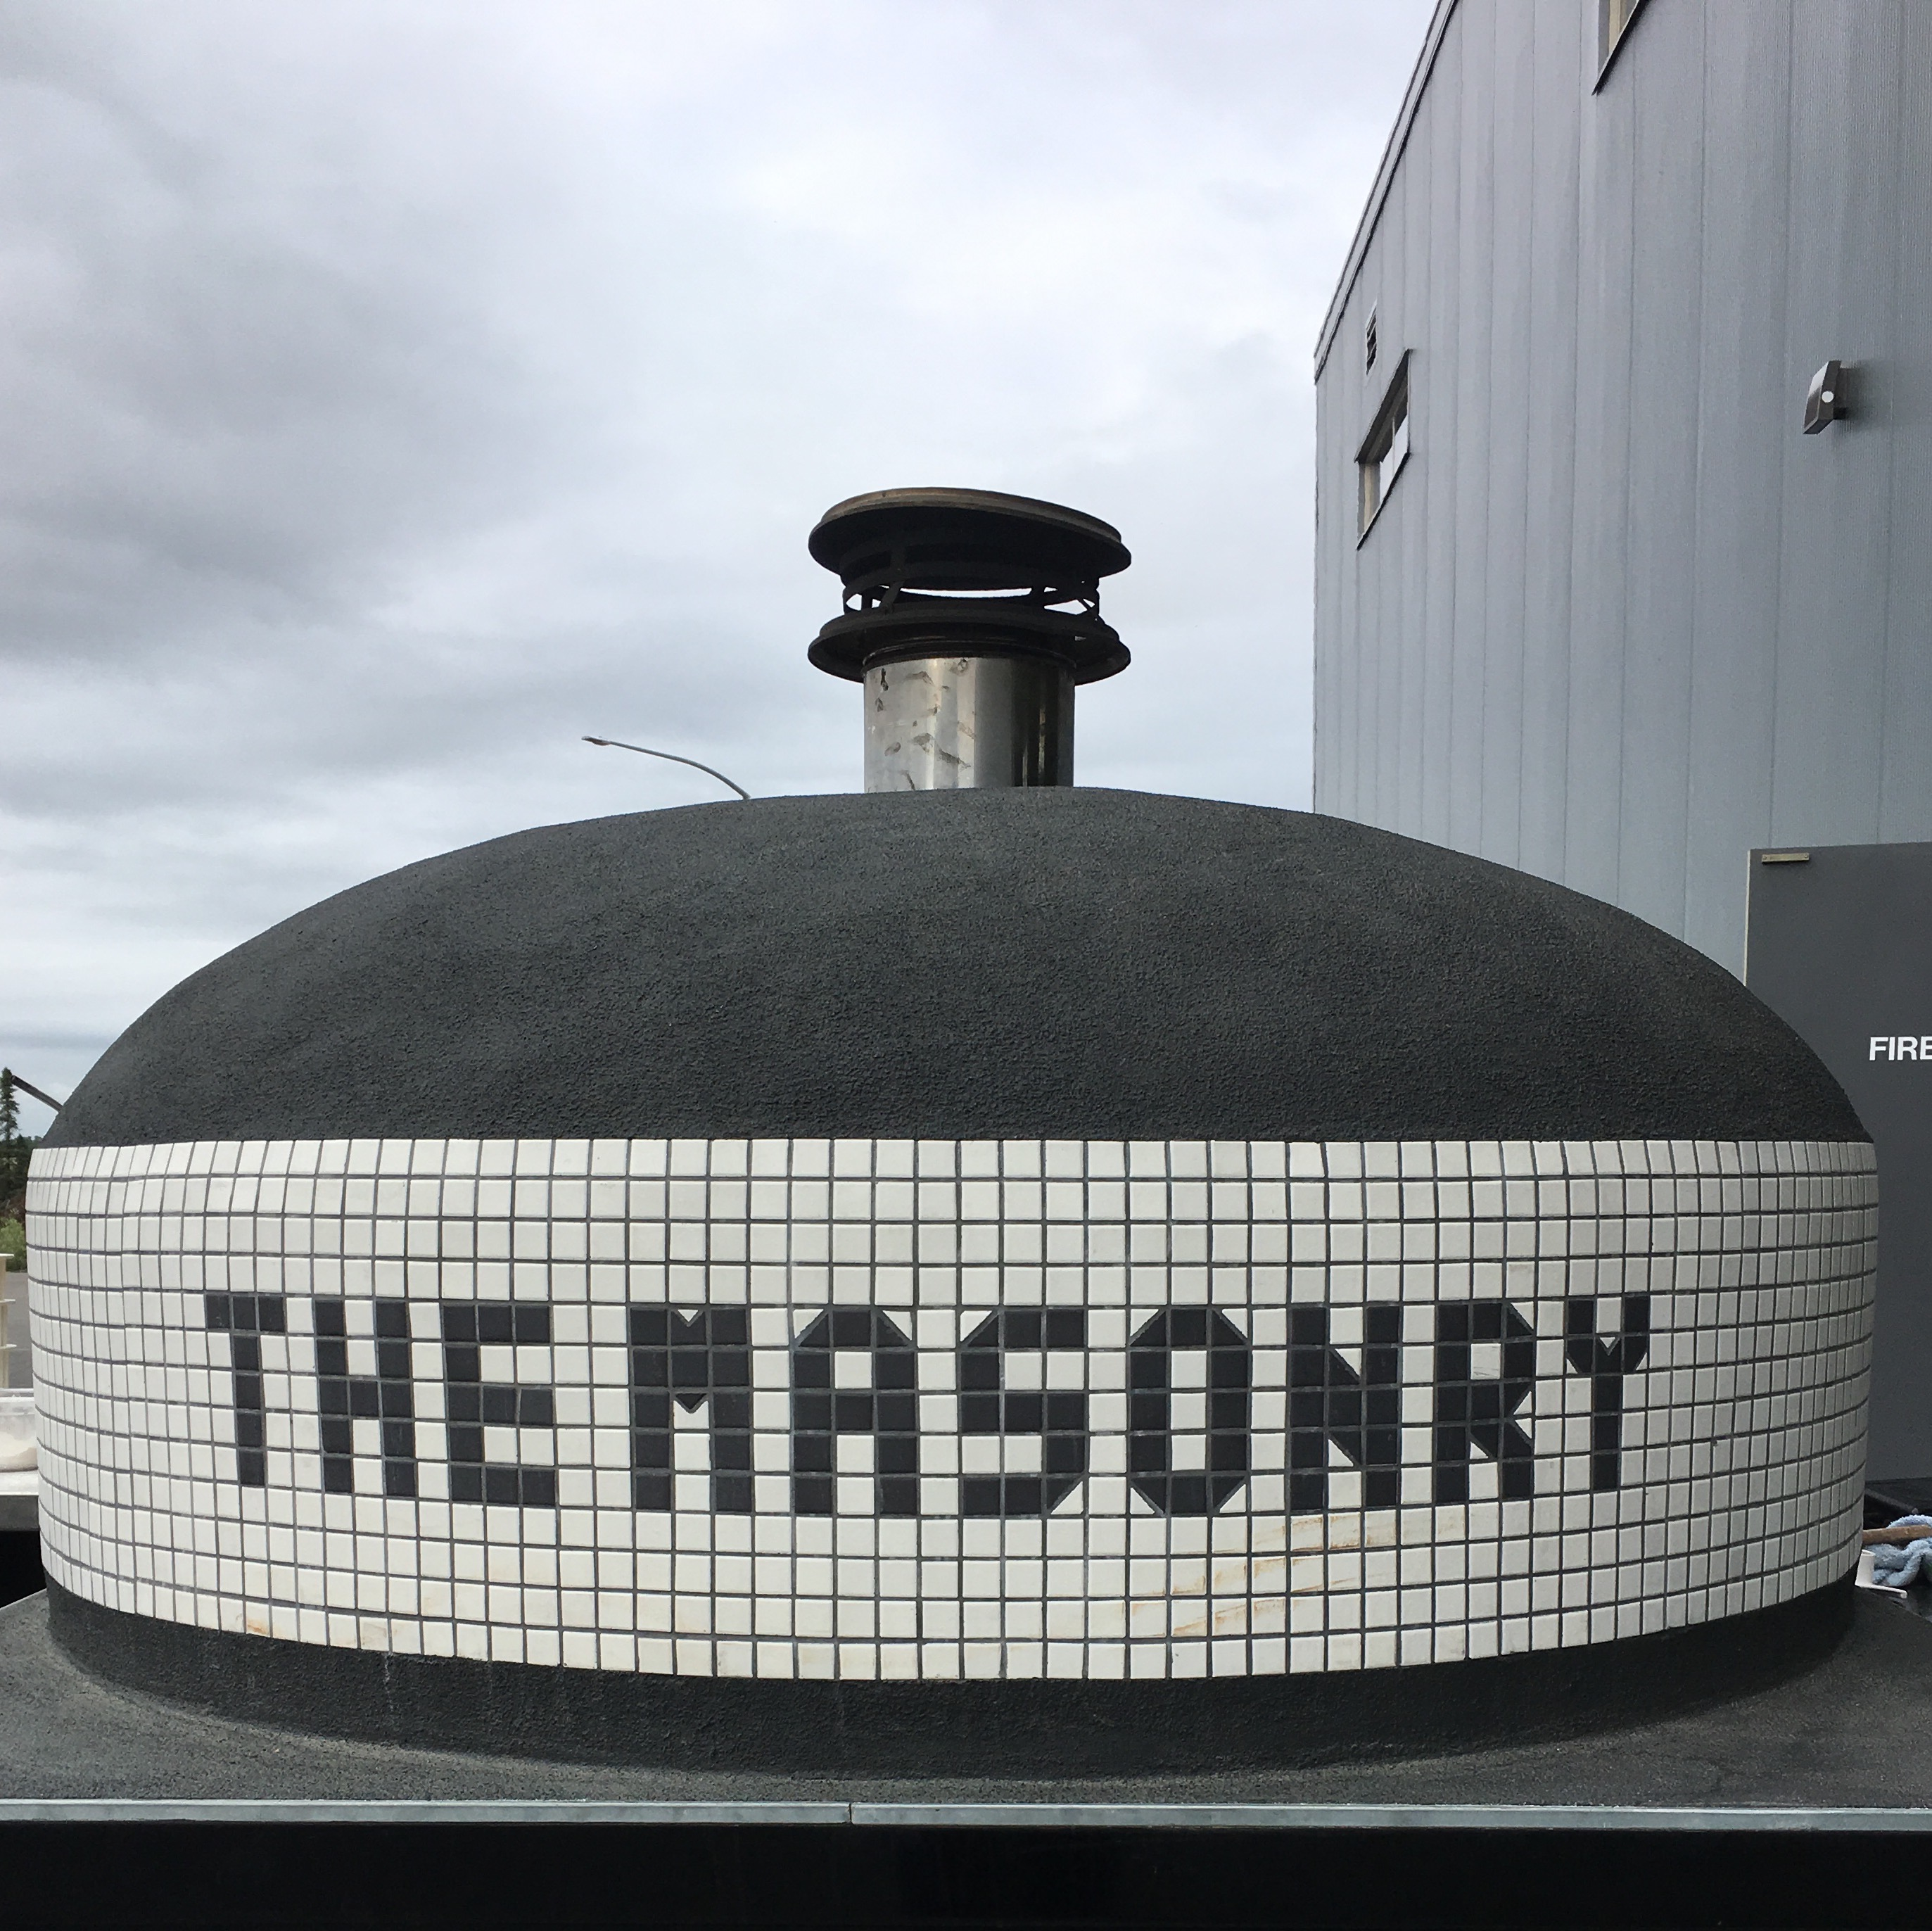 The Masonry from Seattle brought up its pizza oven for The Culmination Festival at Anchorage Brewing.